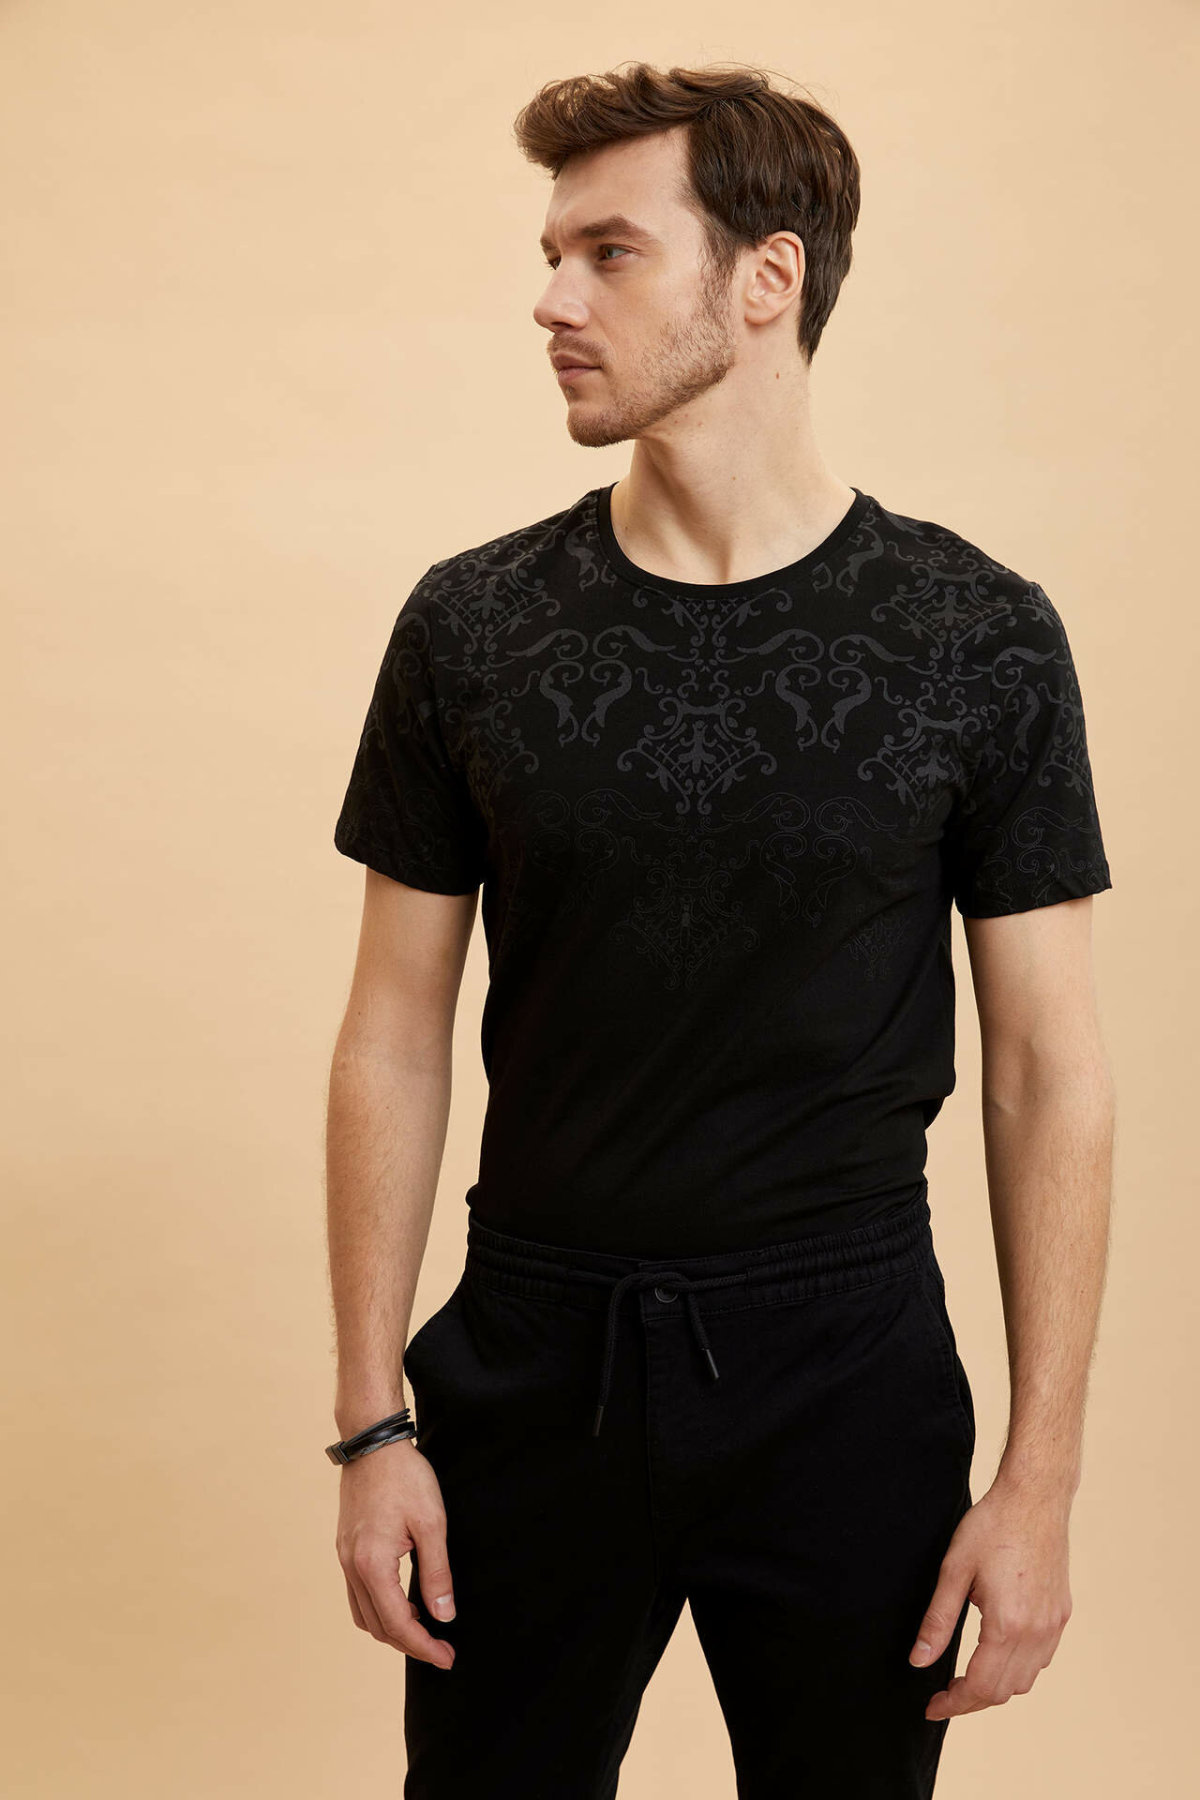 DeFacto Man Summer Black Top Tees Men Casual Short Sleeve T-Shirts Male O-neck T-Shirt-M2798AZ19HS